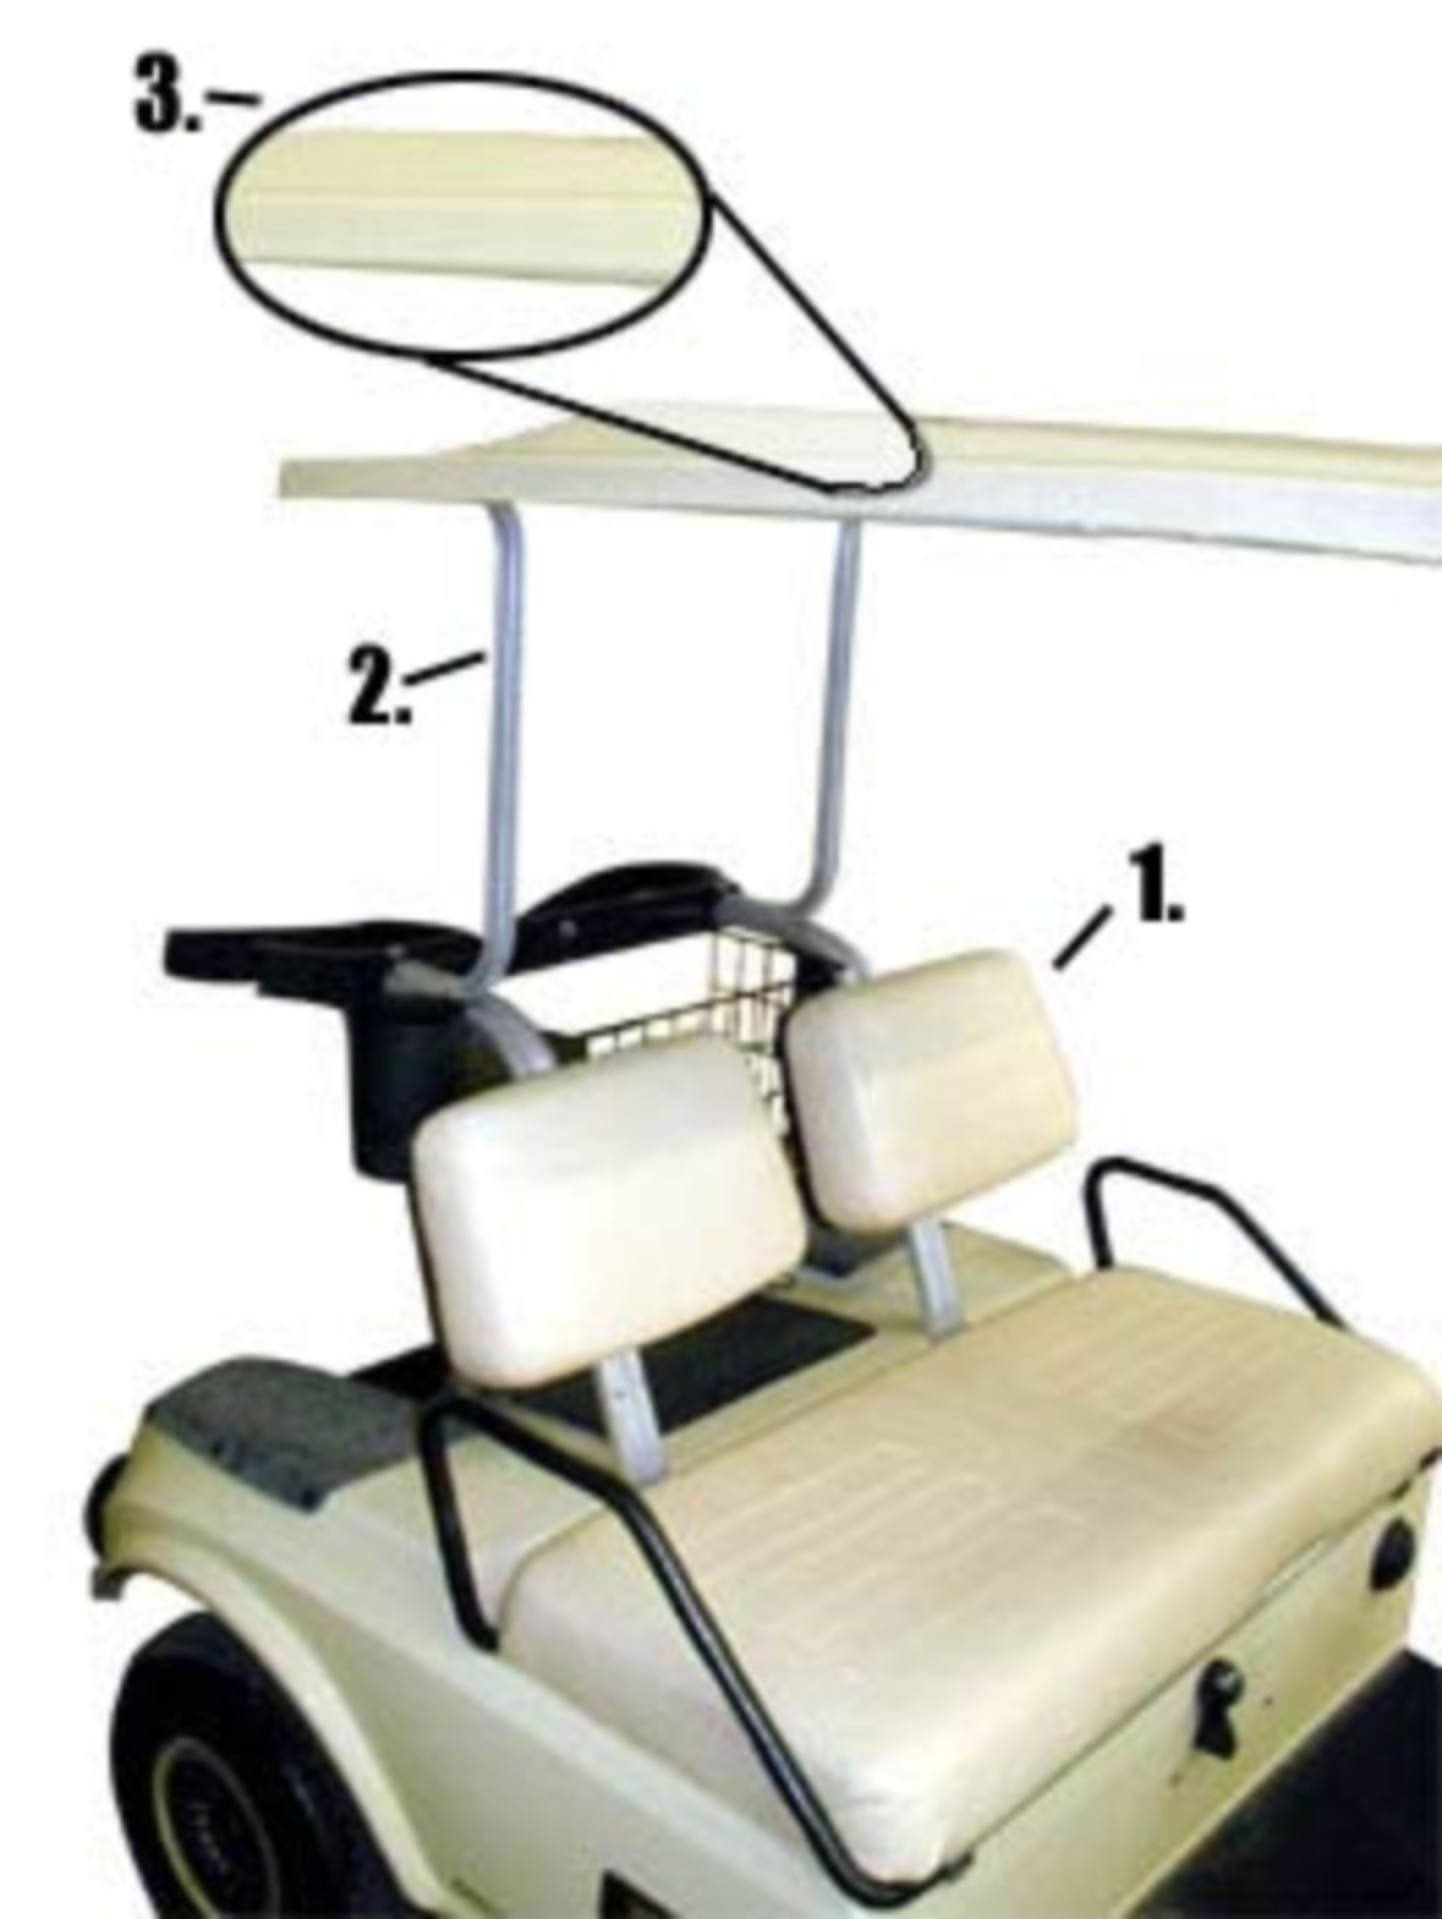 hight resolution of 1982 2000 5 club car s have two distinct seat backs while 2000 5 present models have a connected one piece seat back